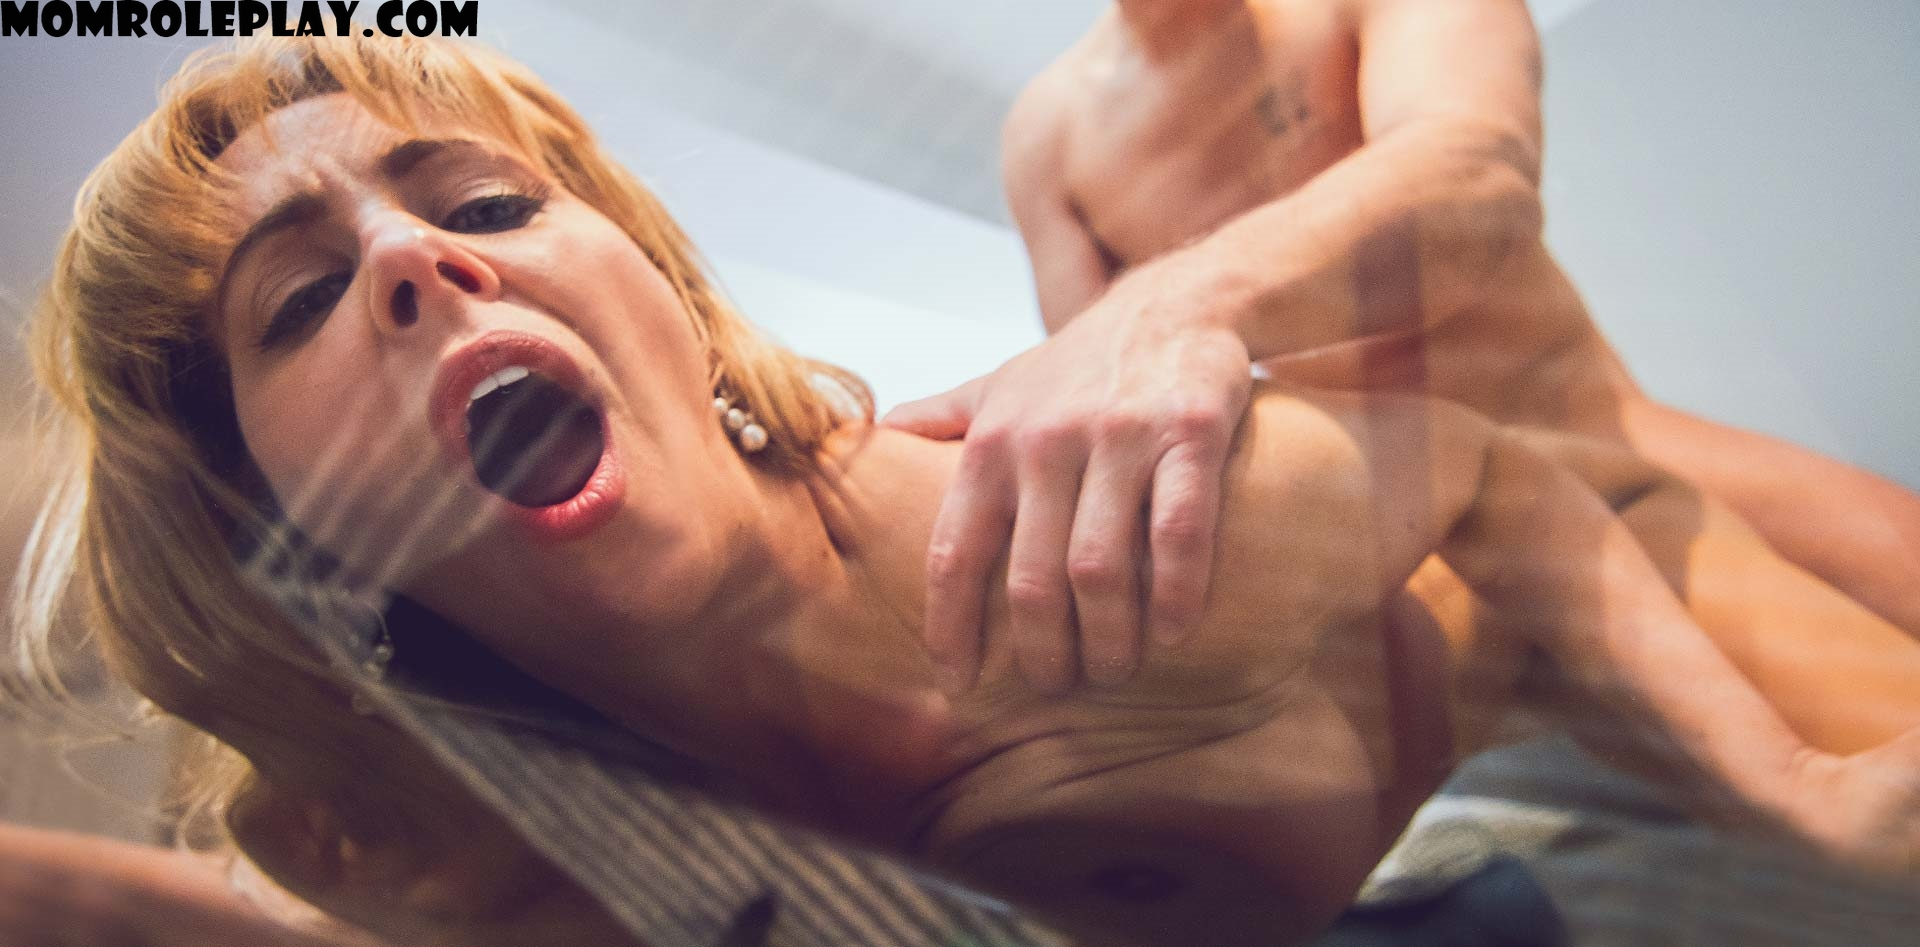 PurgatoryX - Cherie DeVille - The Slut Maker E2 - FullHD 1080p